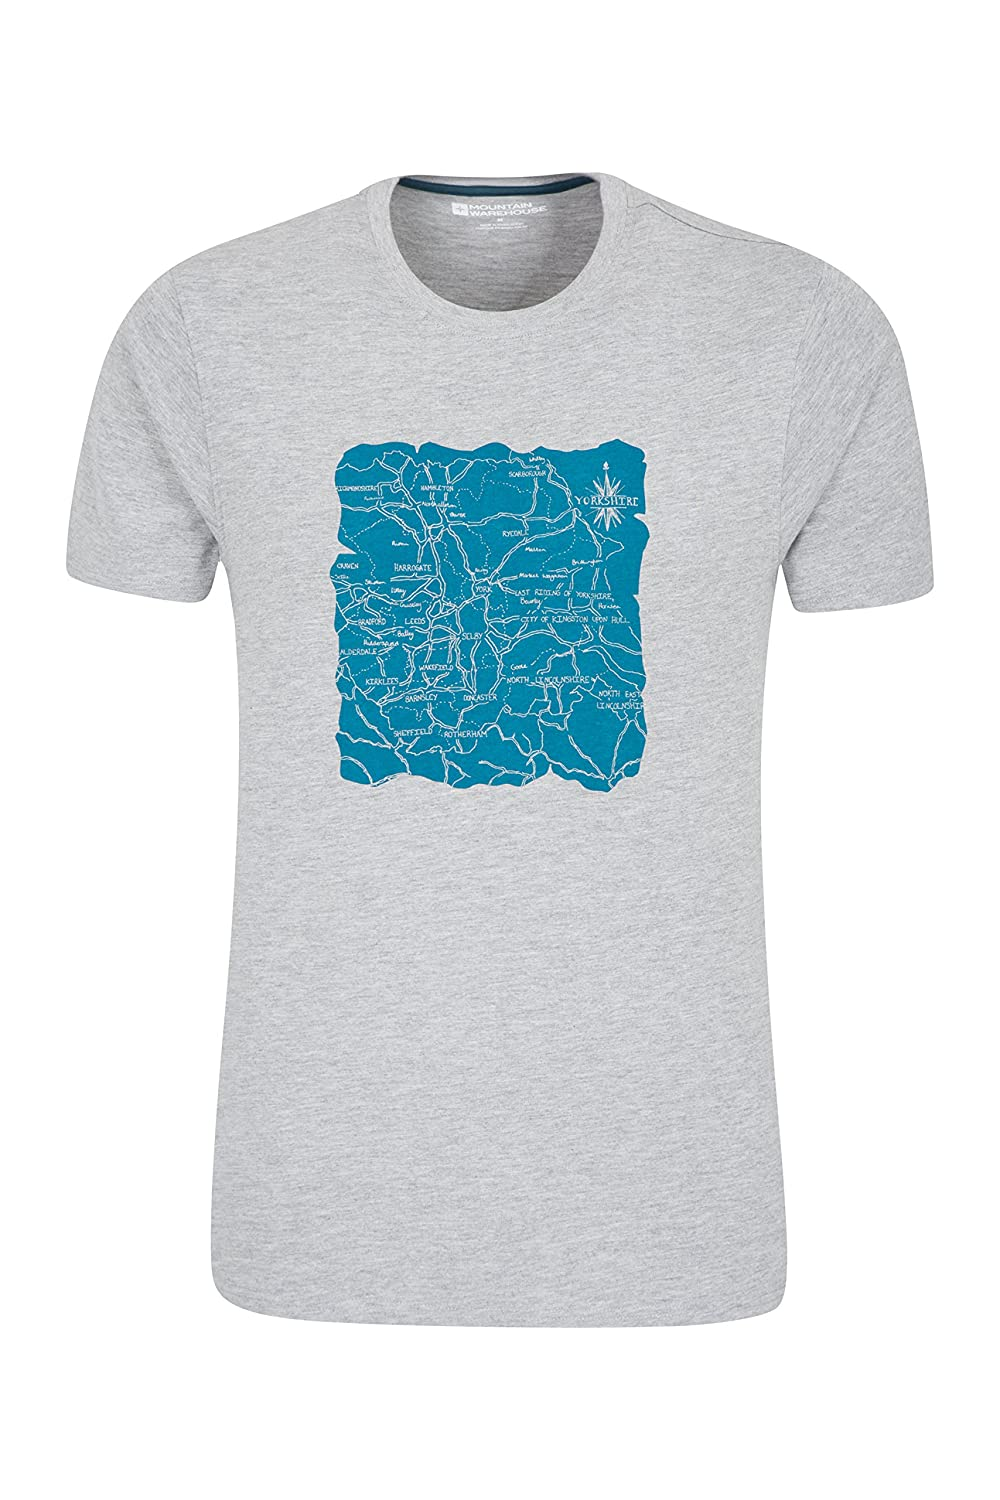 Mountain Warehouse Yorkshire District Mens Tee - Quick Drying Summer Tshirt, Quality Print, Wicking Top, Breathable, Easy Care Undershirt Spring Travelling, Sports